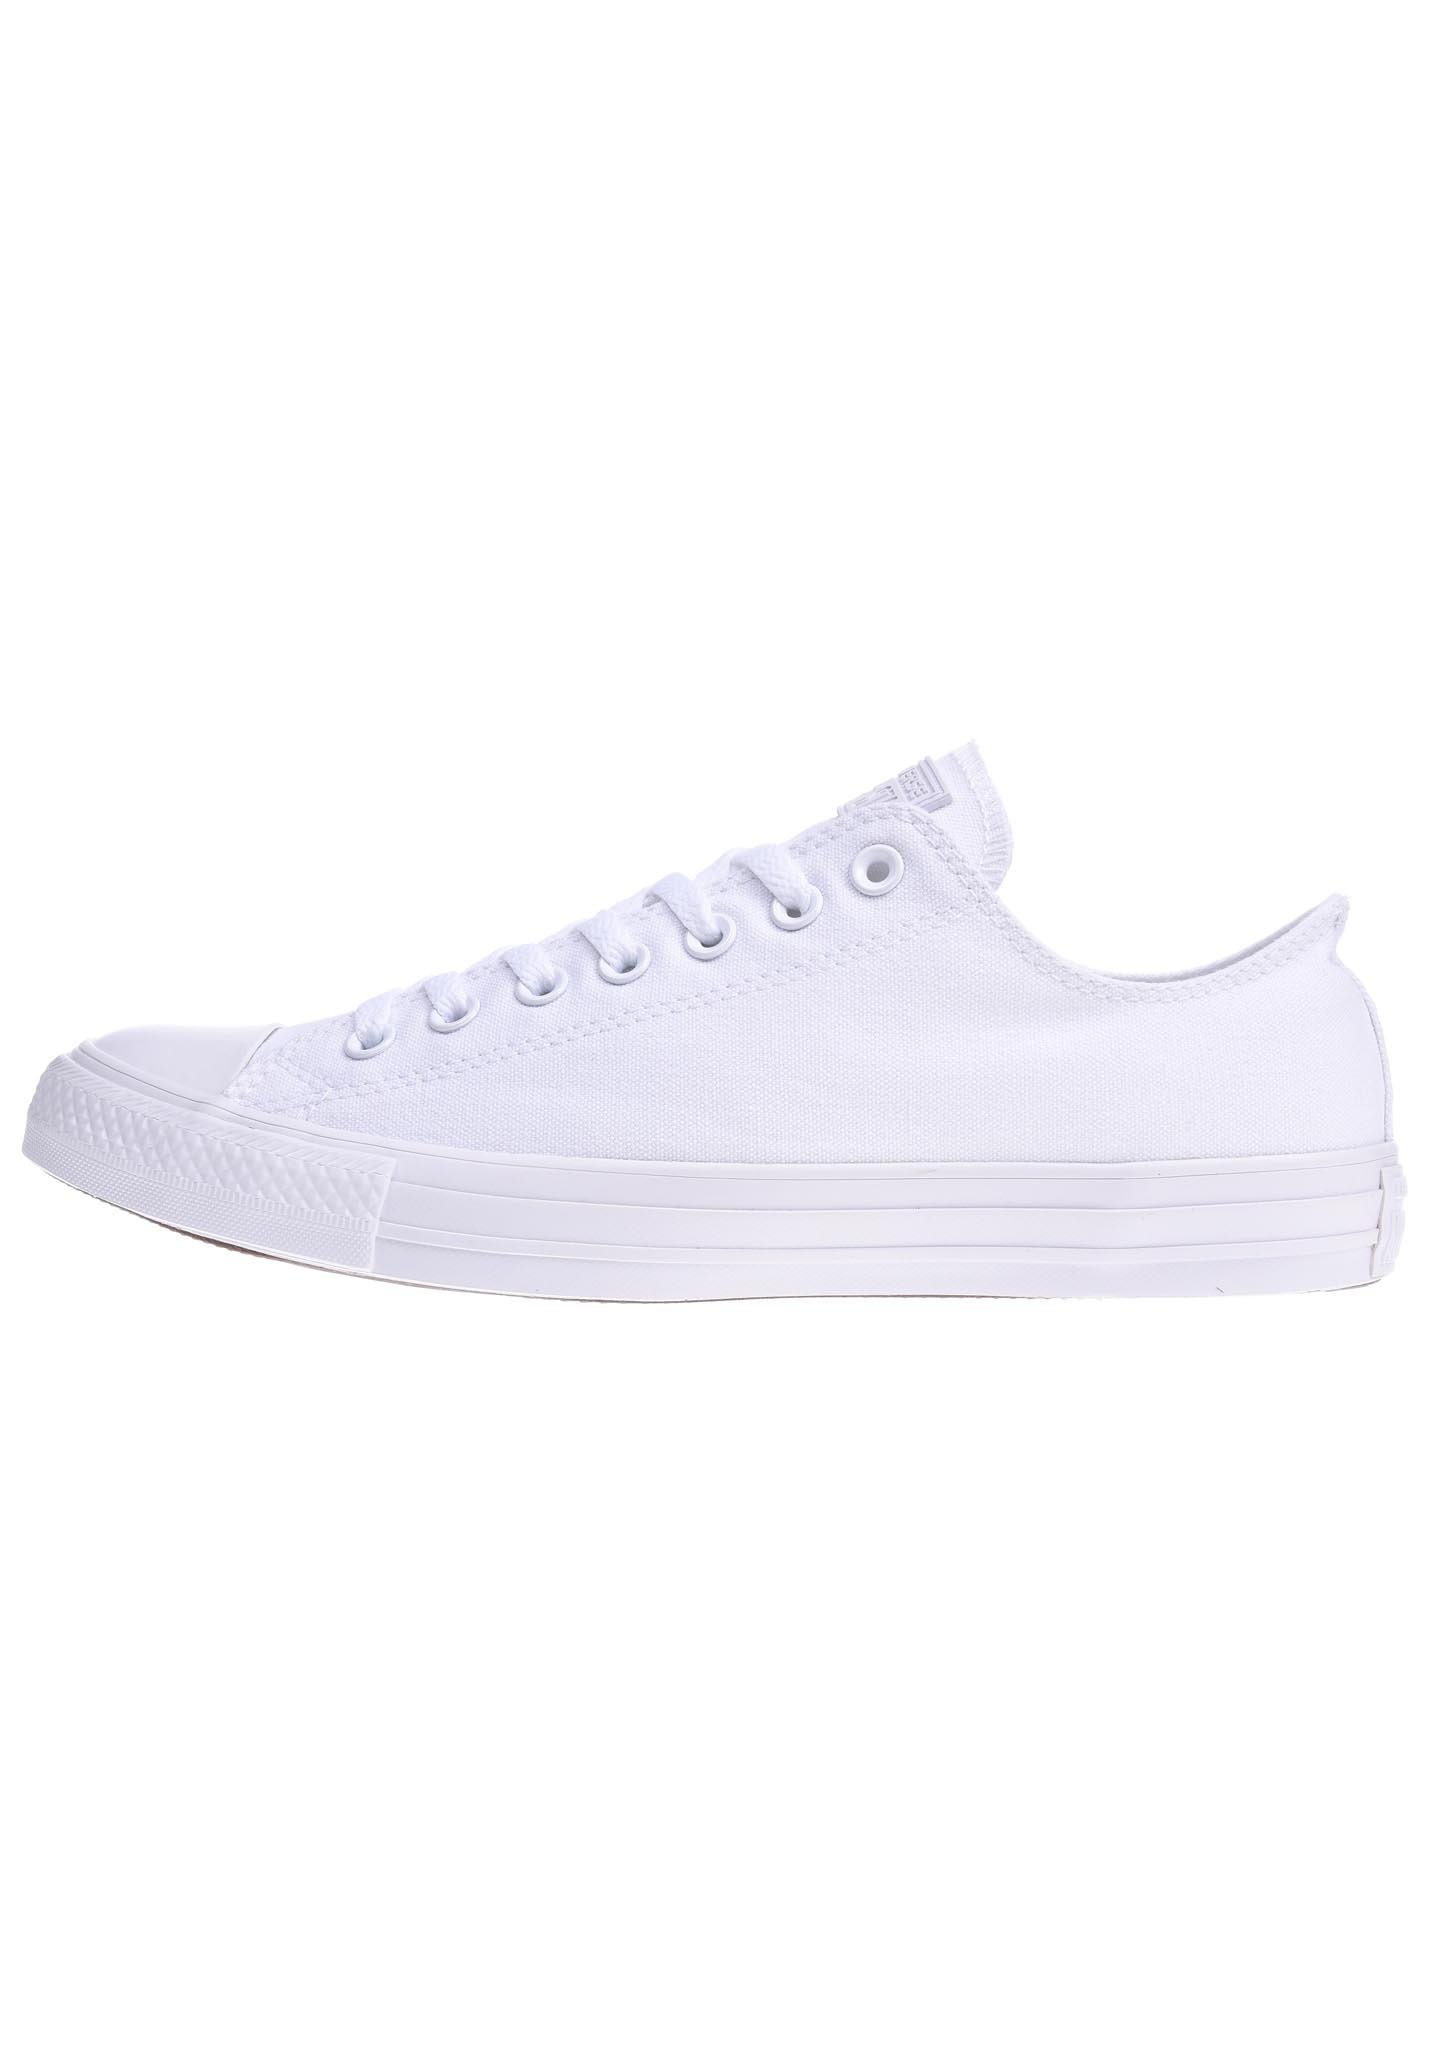 finest selection 9e5f4 f48fb Converse Chuck Taylor All Star Sp OX - Sneaker - Weiß